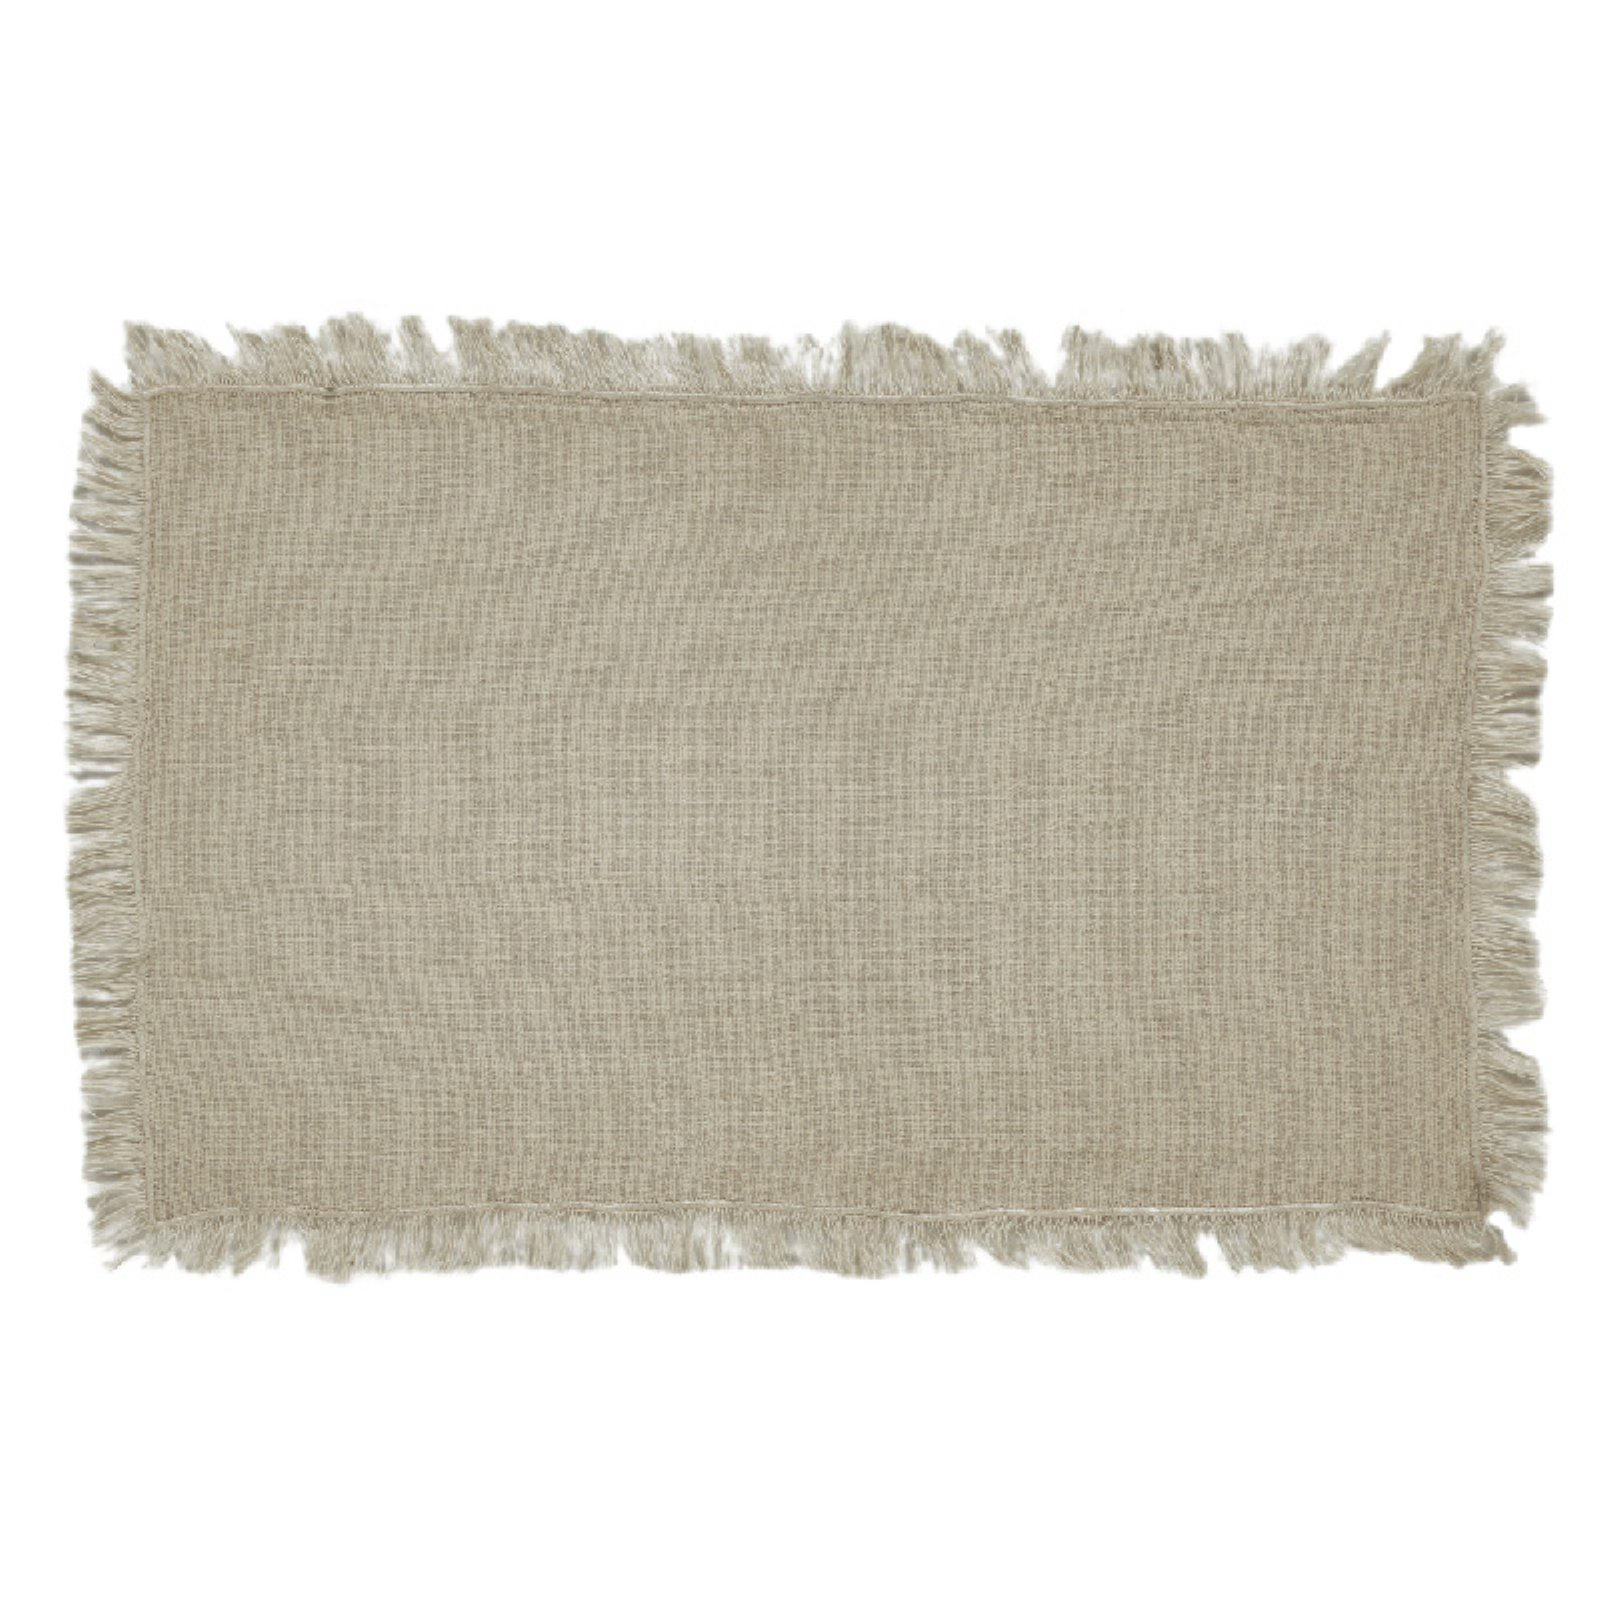 VHC Coastal Farmhouse Tabletop & Kitchen Tobacco Cloth Fringed Placemat Set of 6 by VHC Brands